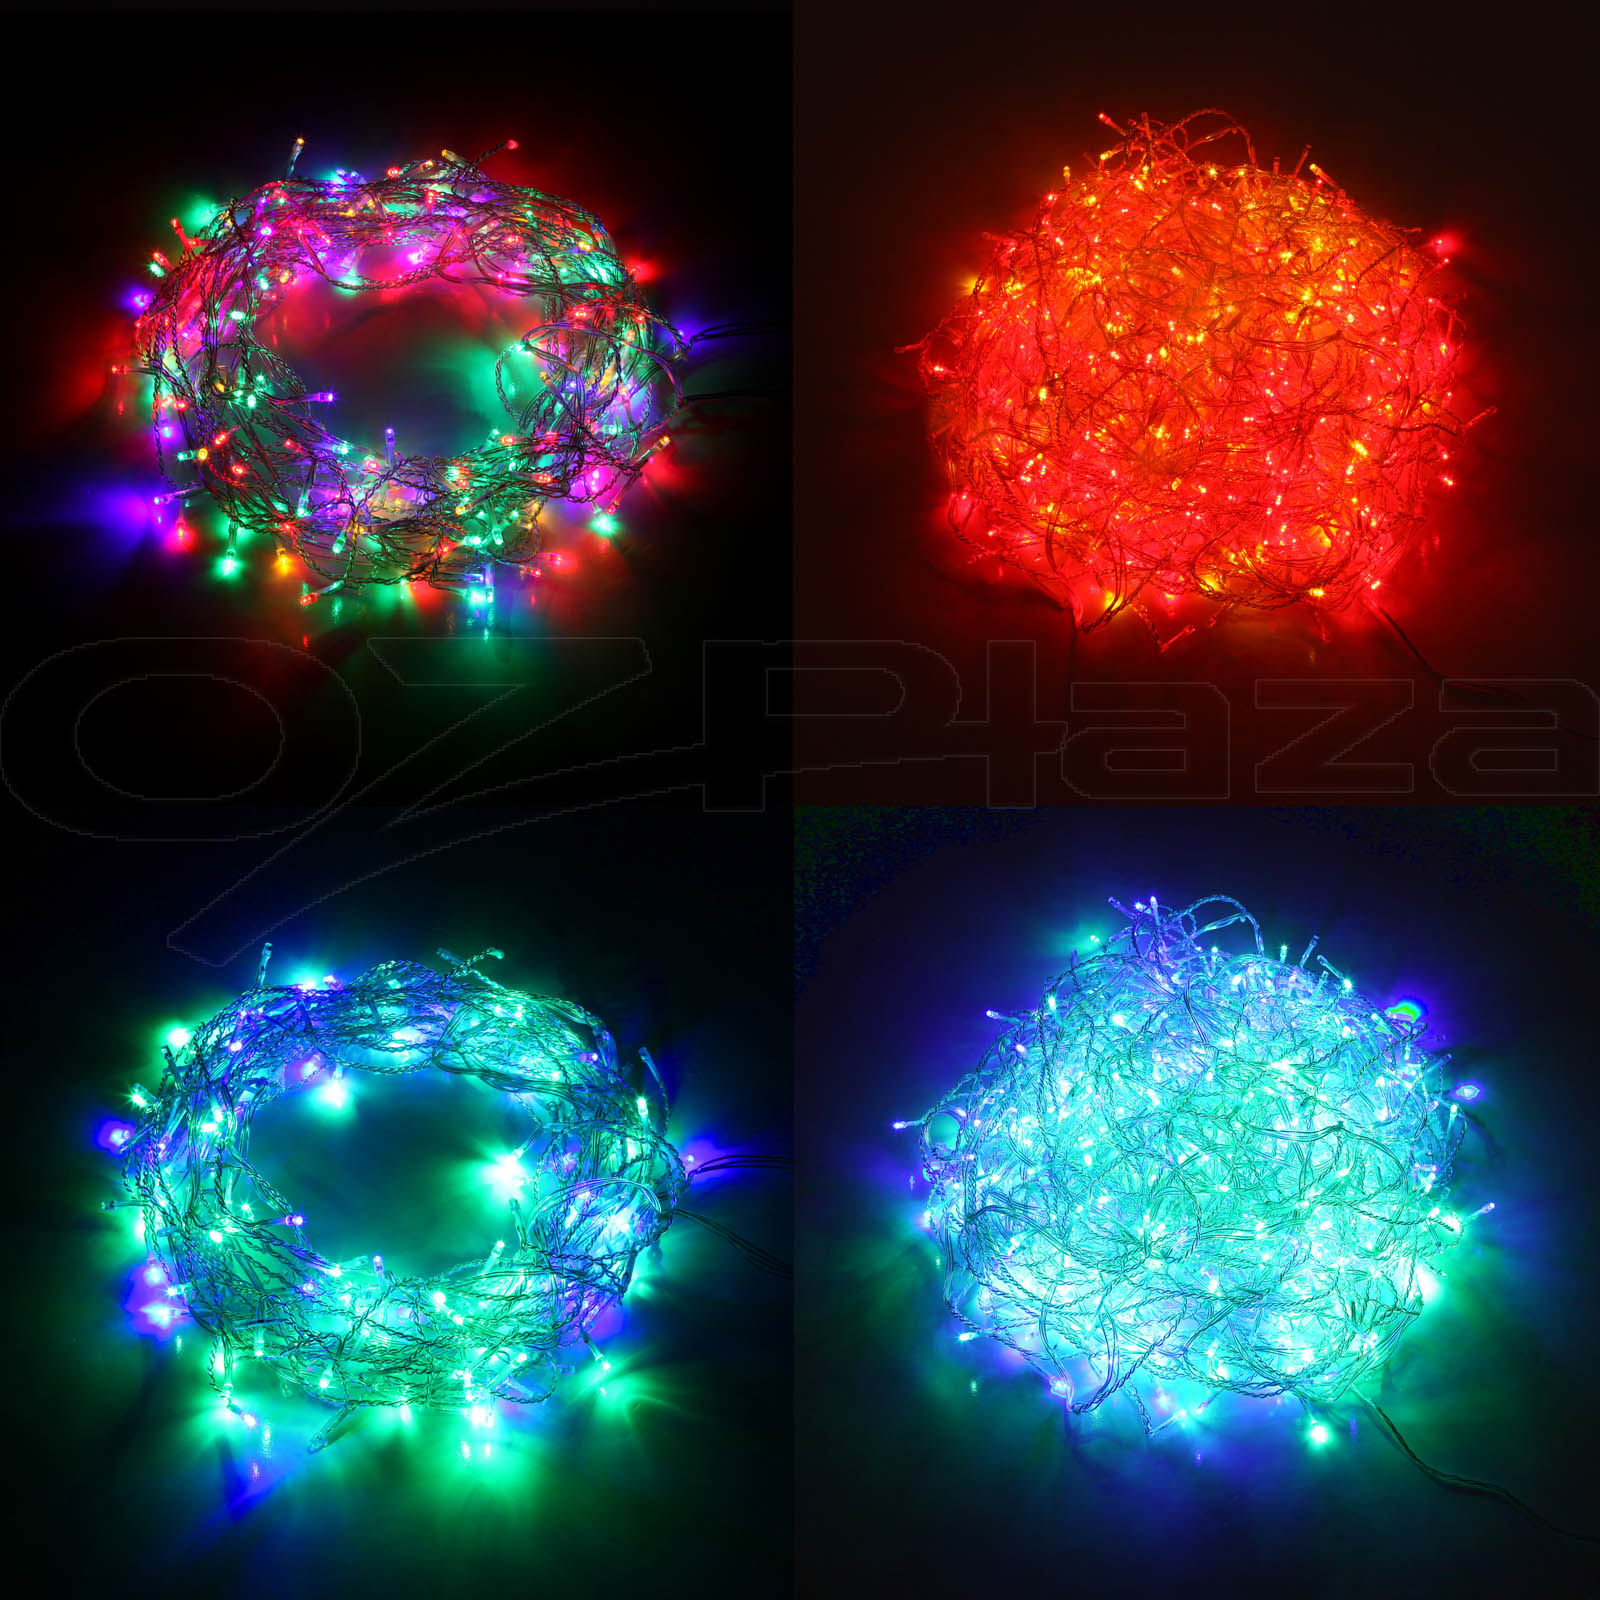 Led String Lights For Centerpieces : 800 LED Christmas String Lights Decorations Outdoor Fair Party Wedding Lighting eBay